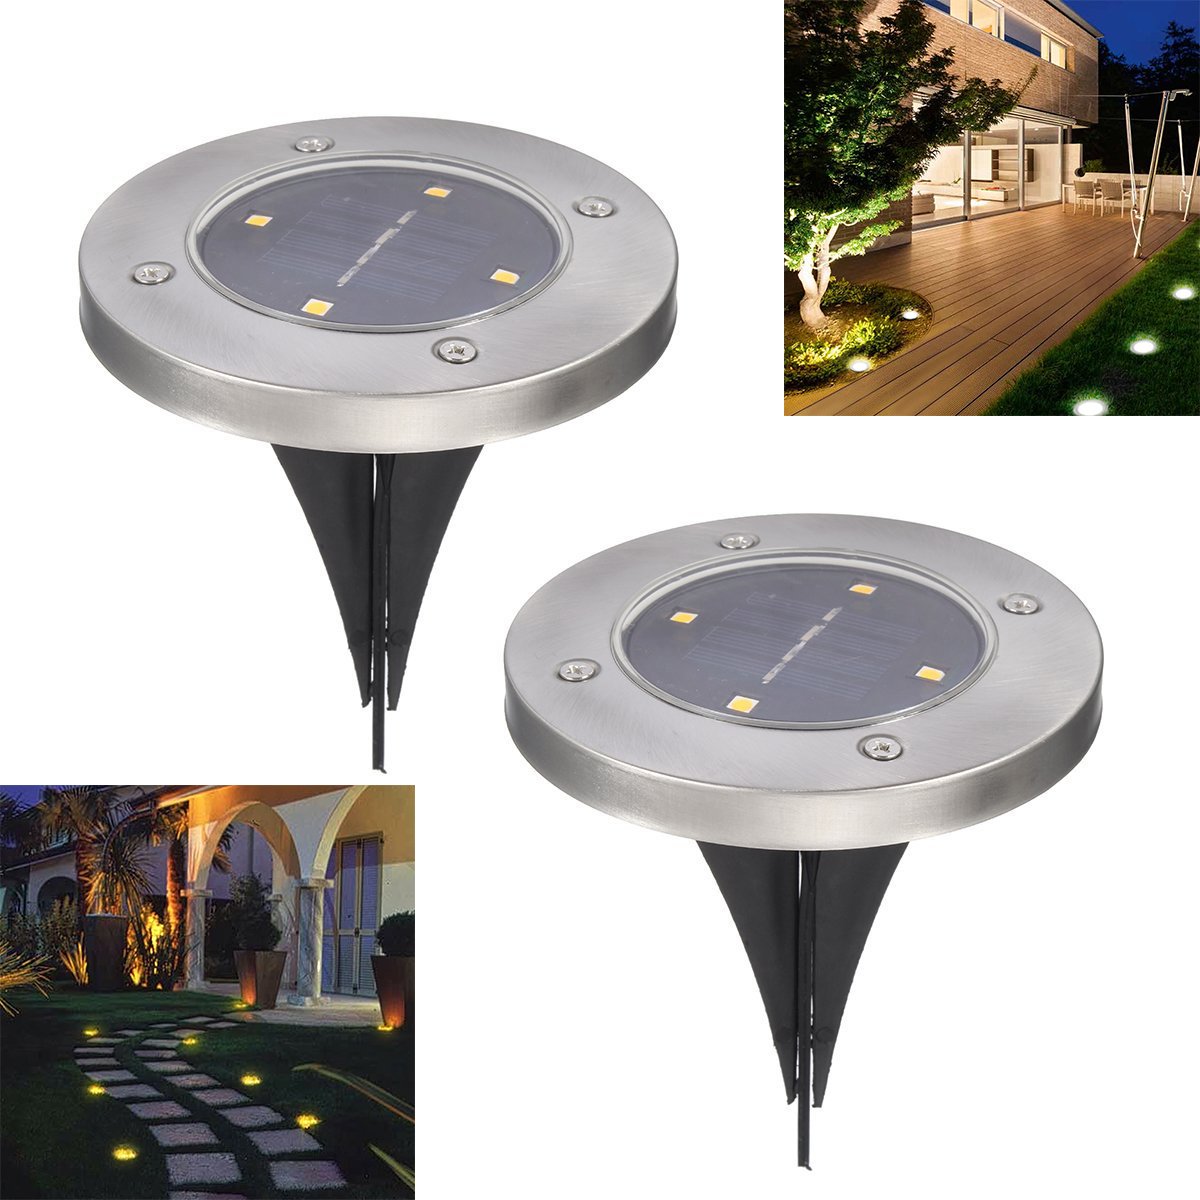 2Pcs 4 LED Solar Powered Buried Light Under Ground Lamp Outdoor Pathway Garden